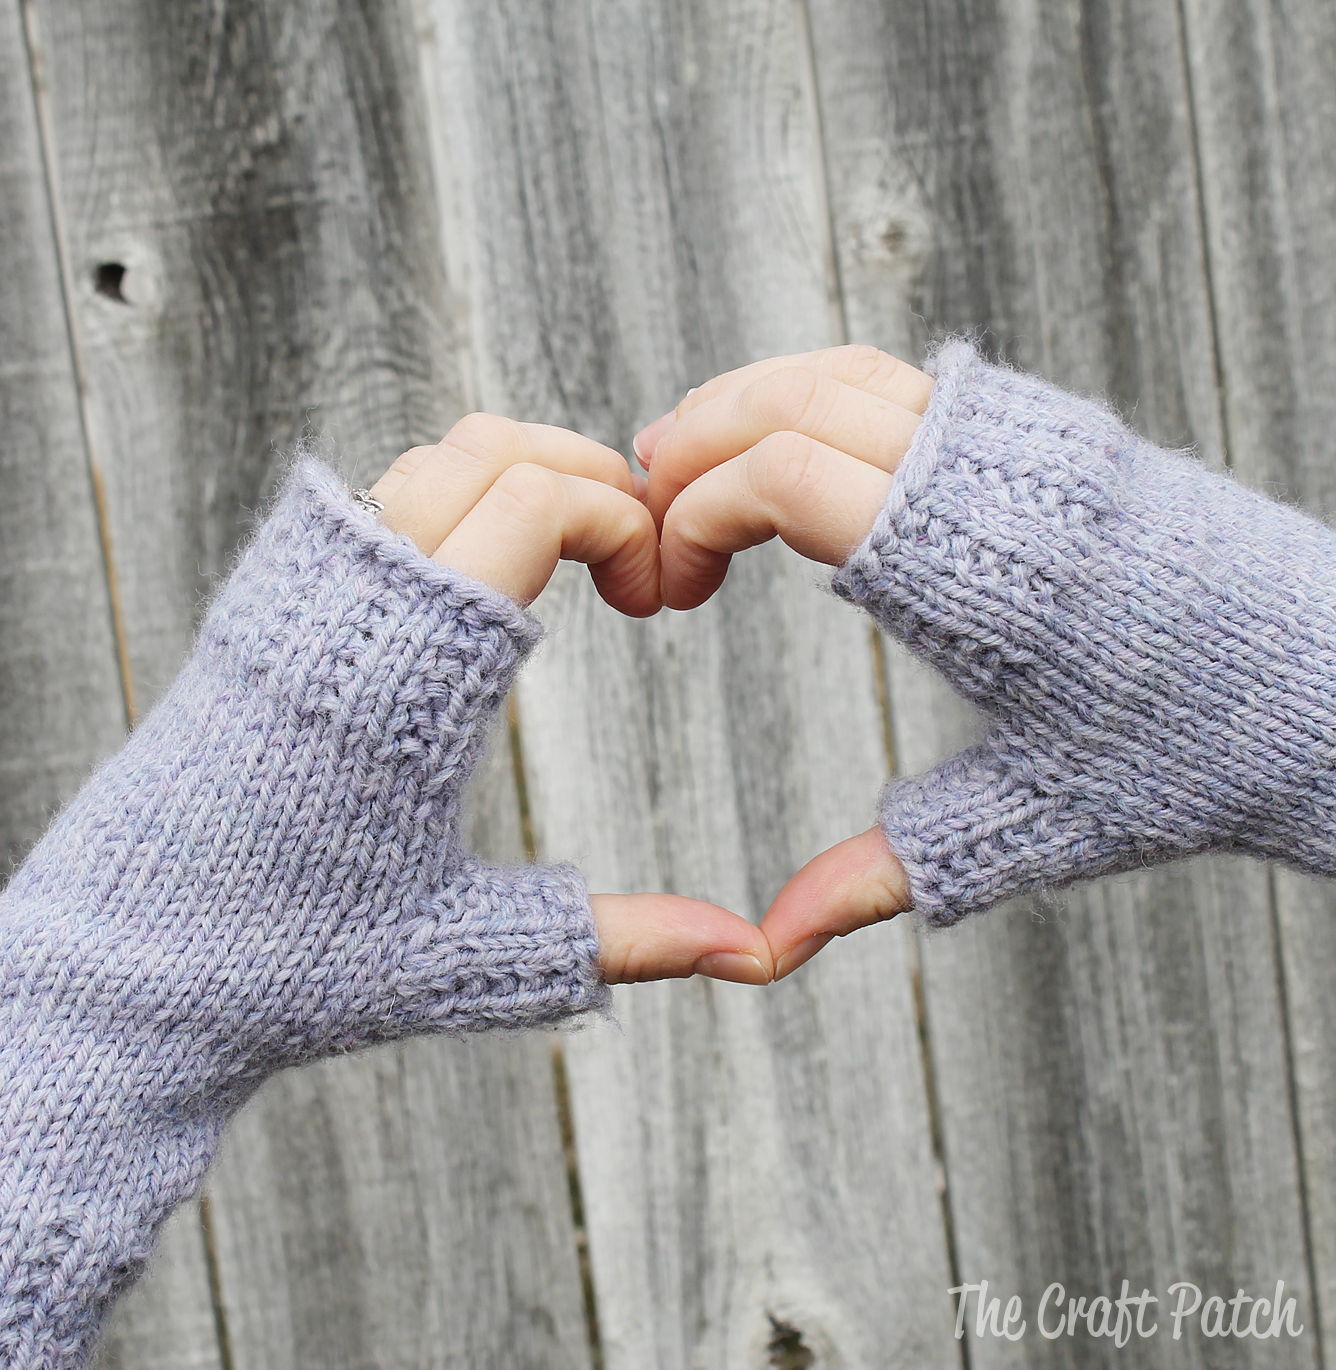 Knitting Pattern Fingerless Mittens Two Needles : The Craft Patch: Learn To Knit: Happy Hands Fingerless Mitts Free Pattern